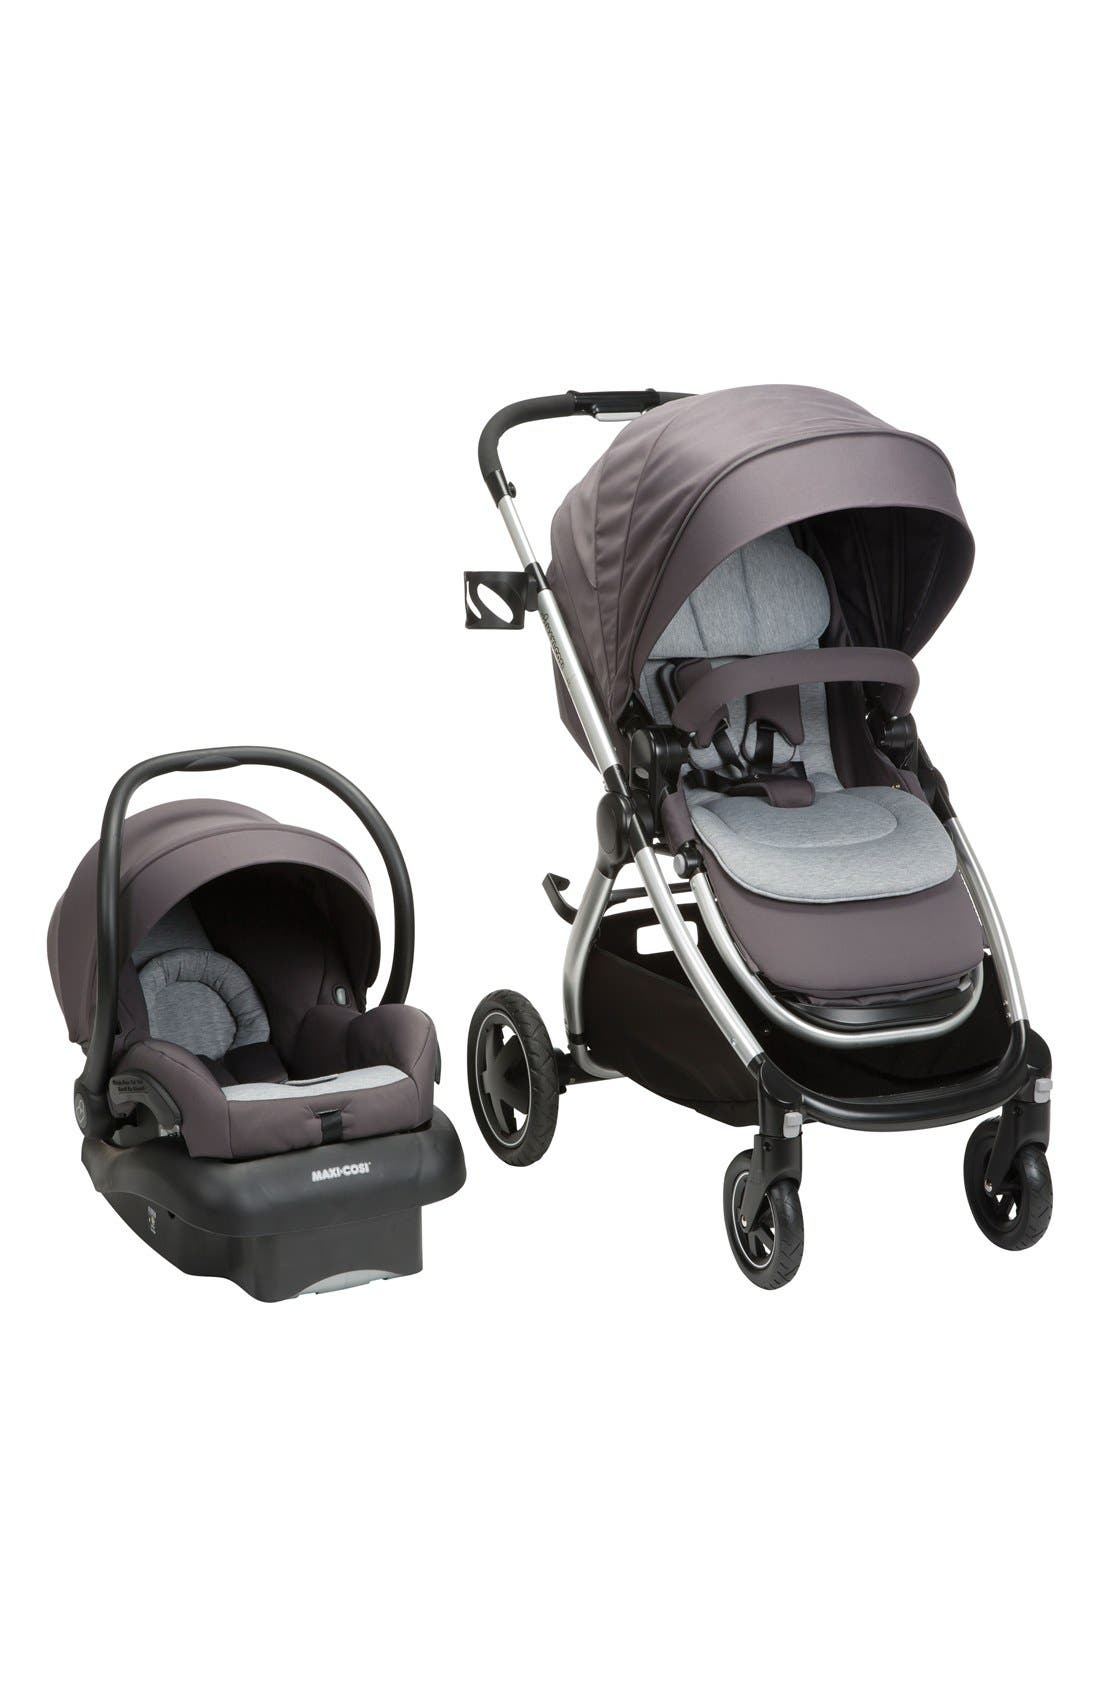 Alternate Image 1 Selected - Maxi-Cosi® Adorra Travel System